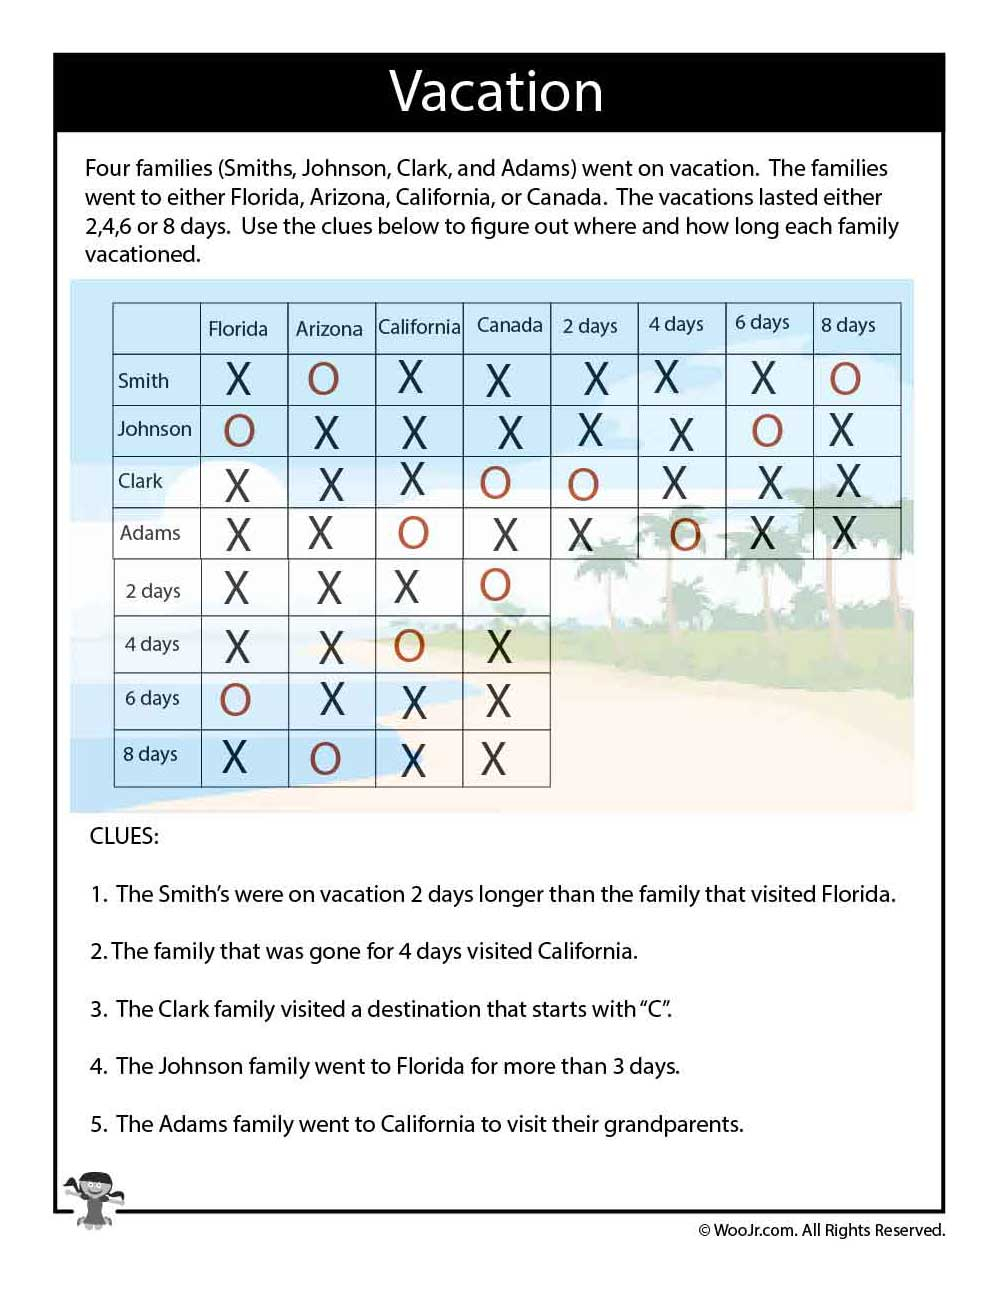 On Vacation Difficult Logic Puzzle - Answers | Woo! Jr. Kids throughout Letter Logic Worksheets Answers